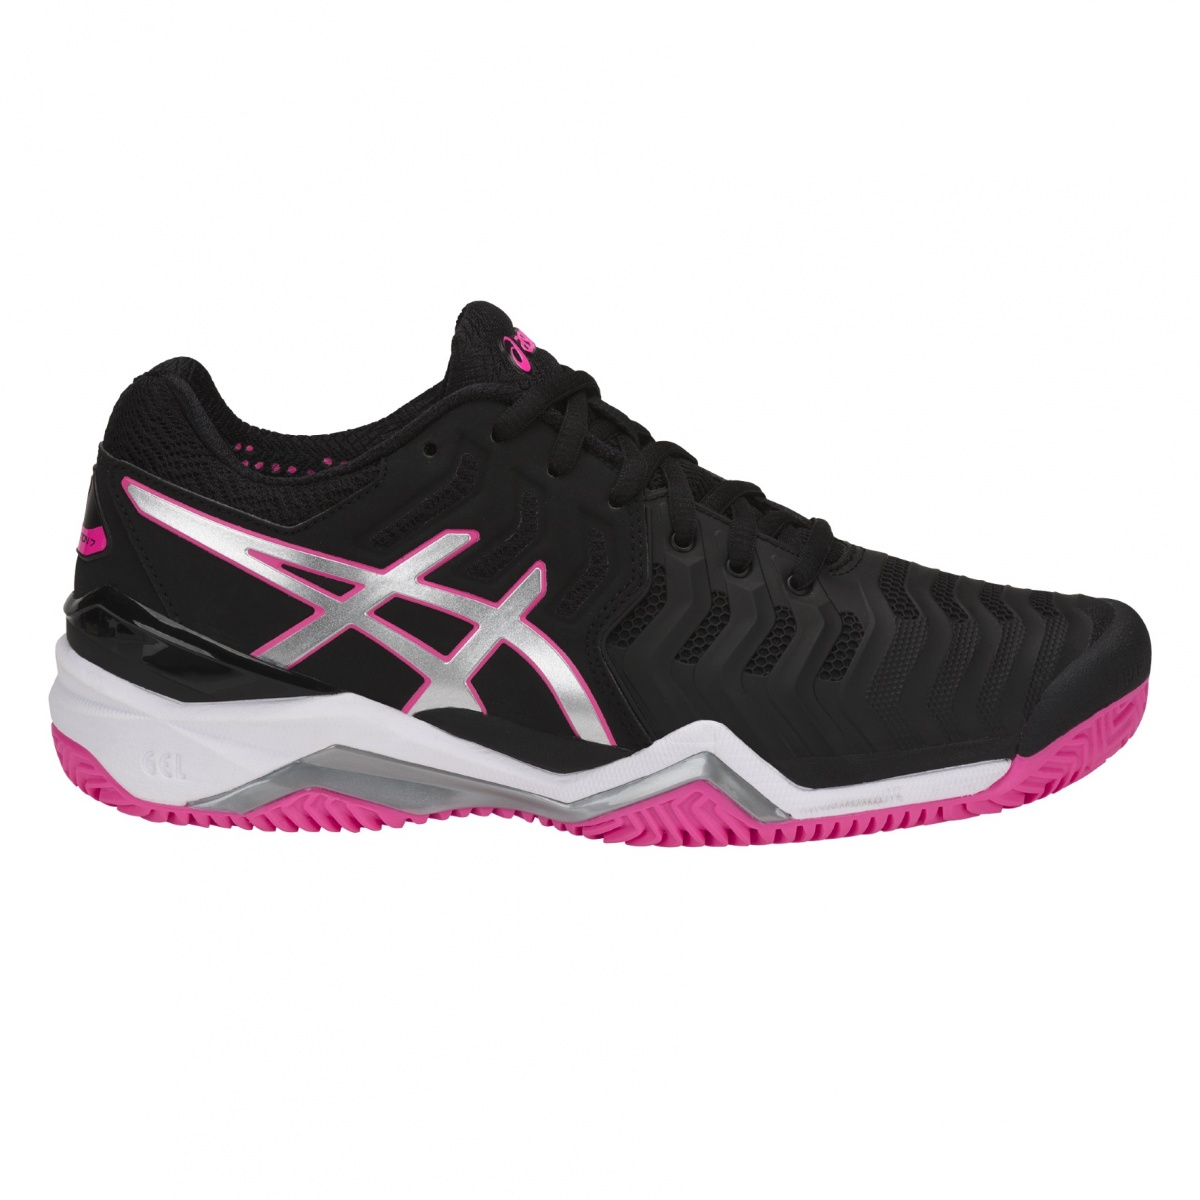 Asics Gel Resolution 7 Clay 2018 schwarzpink Tennisschuhe